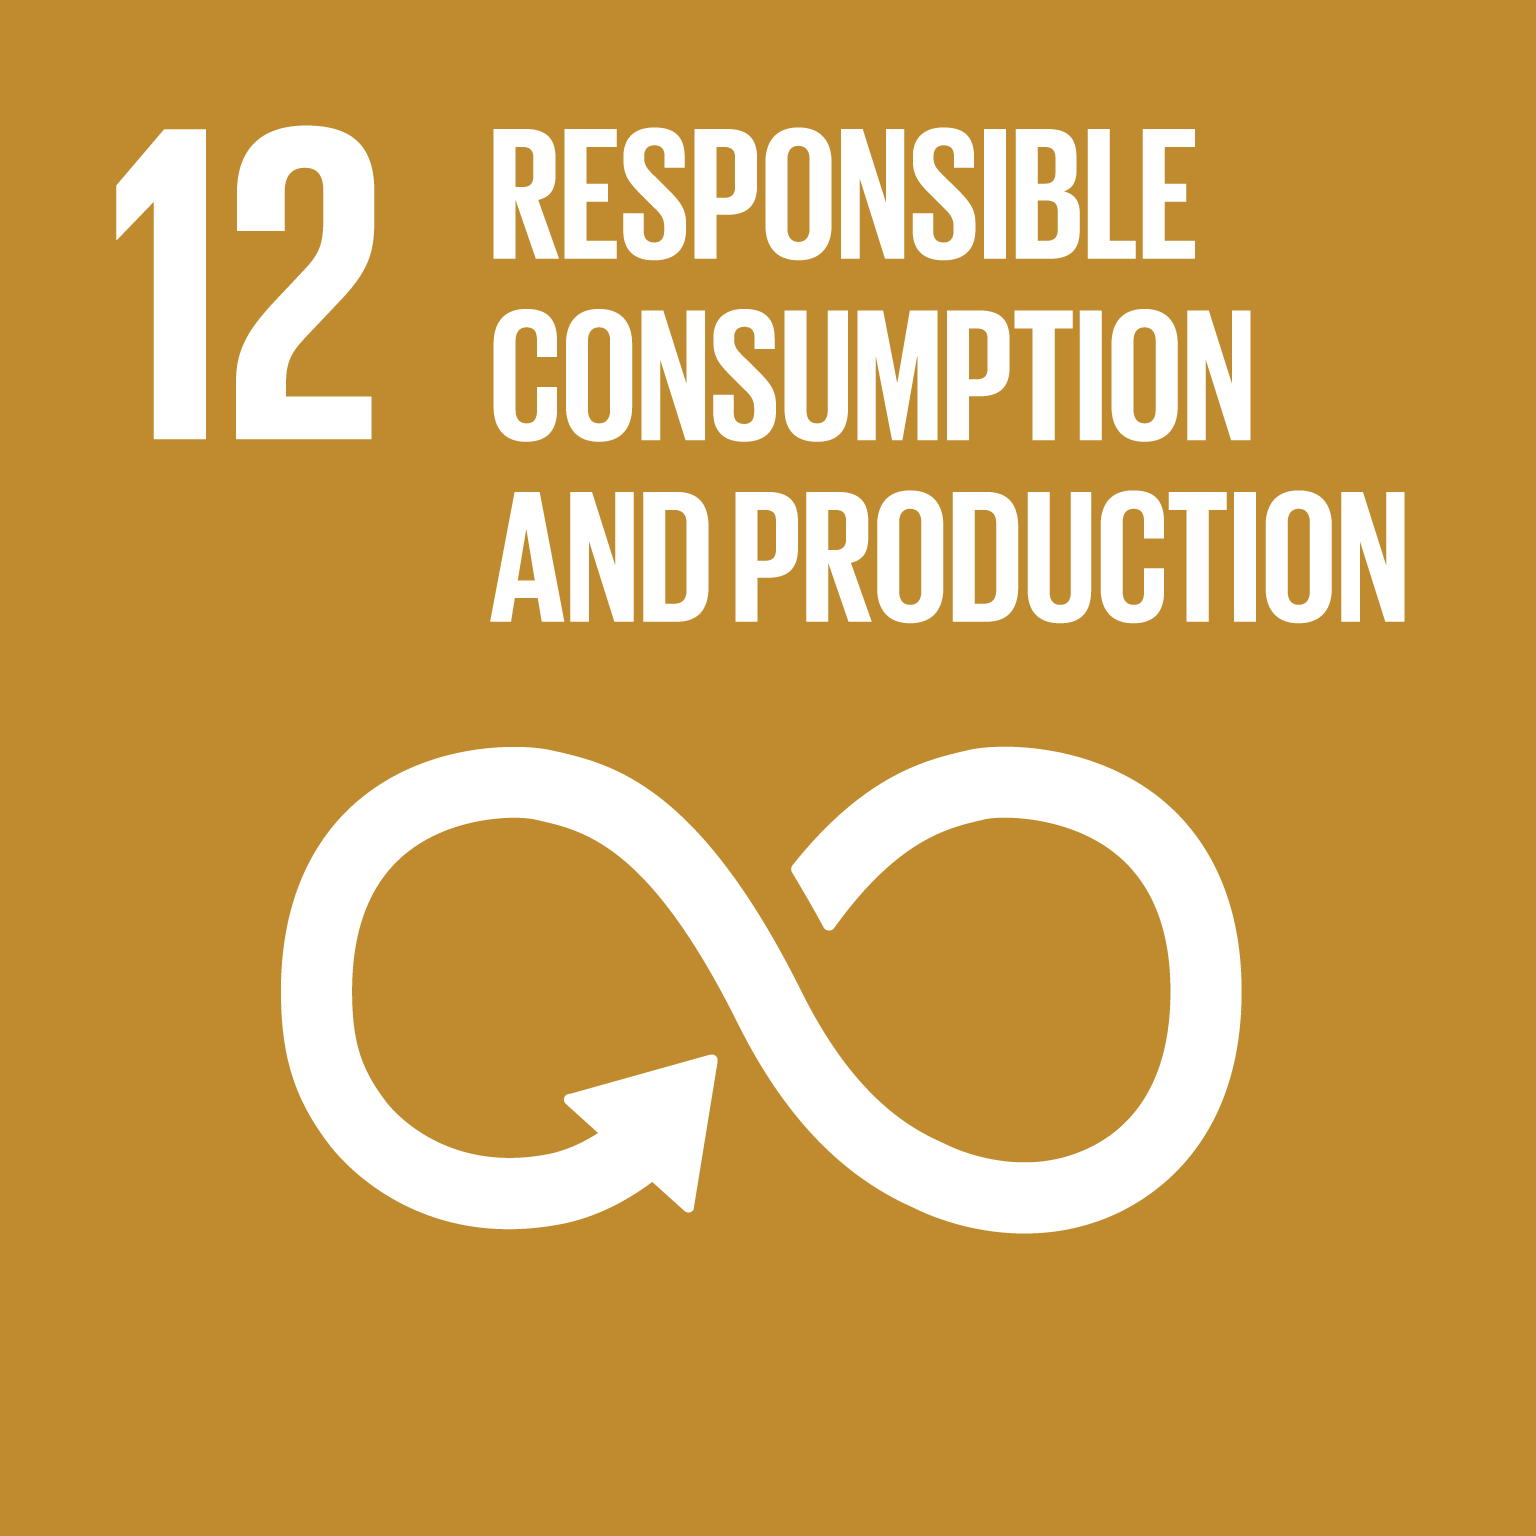 The SDGs icons of RESPONSIBLE CONSUMPTION AND PRODUCTION